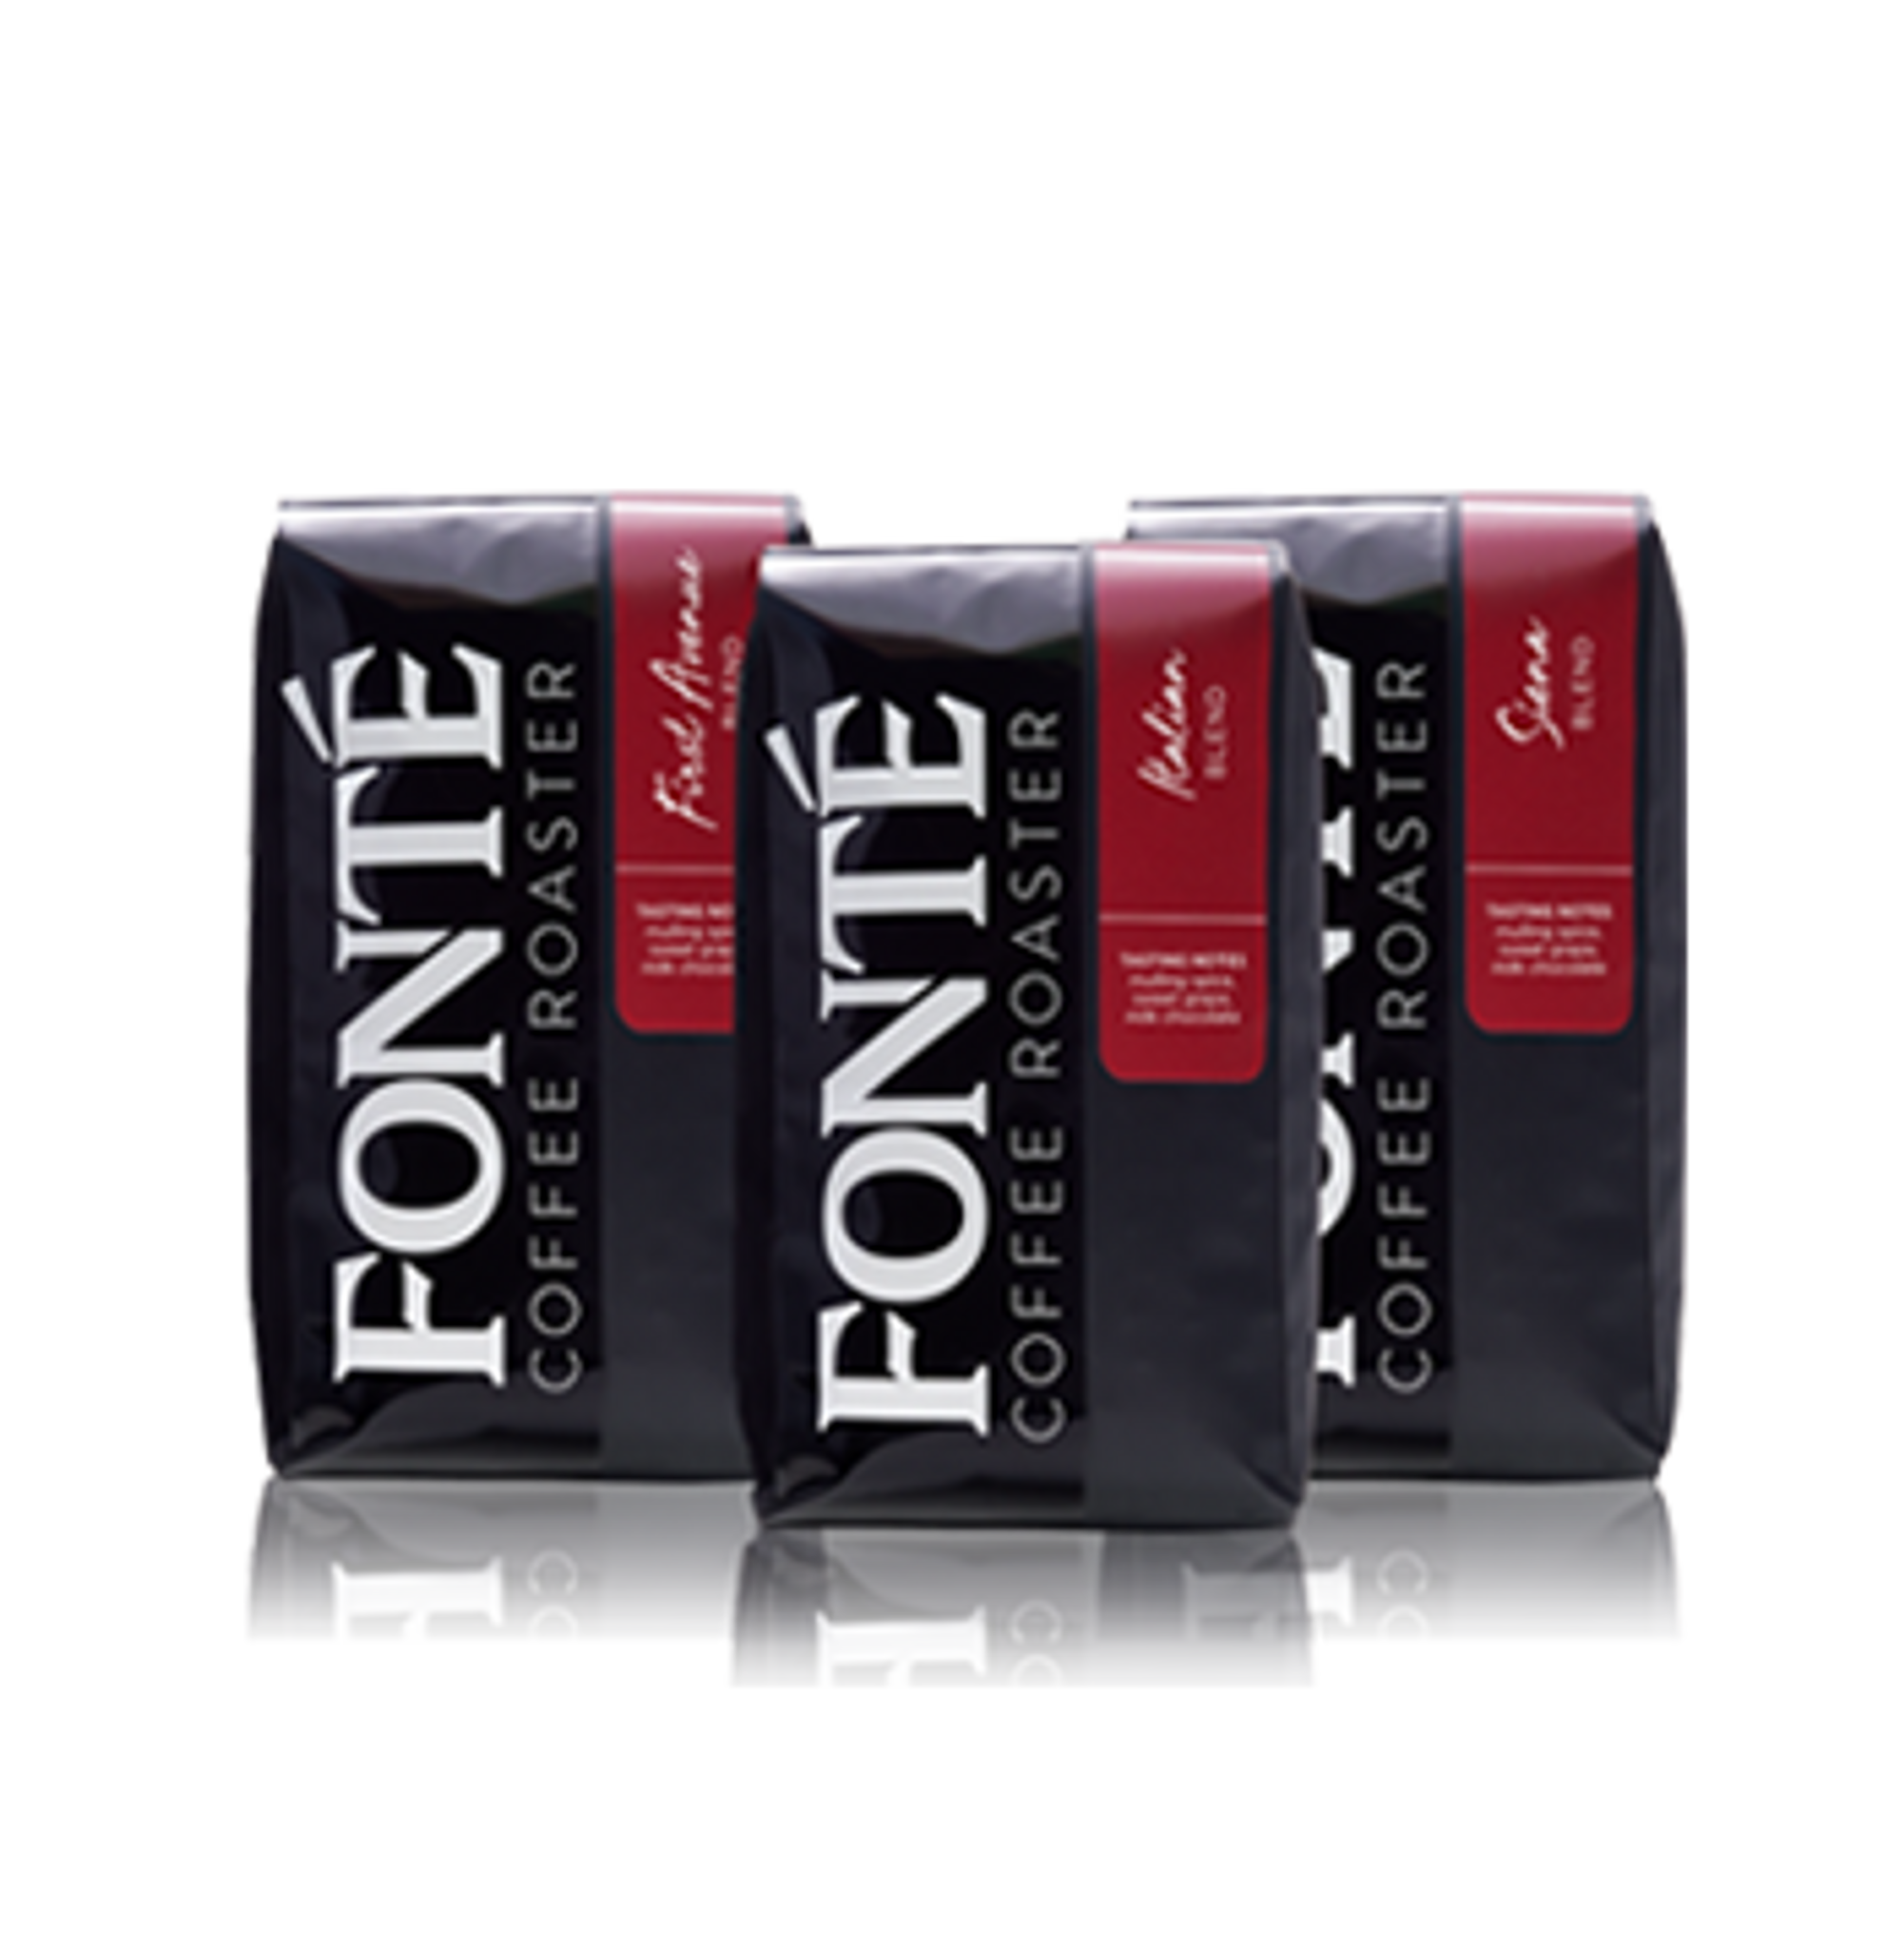 Each Gift Trio Box Contains 3 of Fonte's Best-Selling Coffee Blends in 12oz. bags! First Ave, Bright Lemon, Earthy Tobacco, Bittersweet Chocolate, Italian, Top Seller, Earthy, Spicy, and Berry,Siena, Dry, Sweet Citrus, Smoky Caramel Tasting Notes